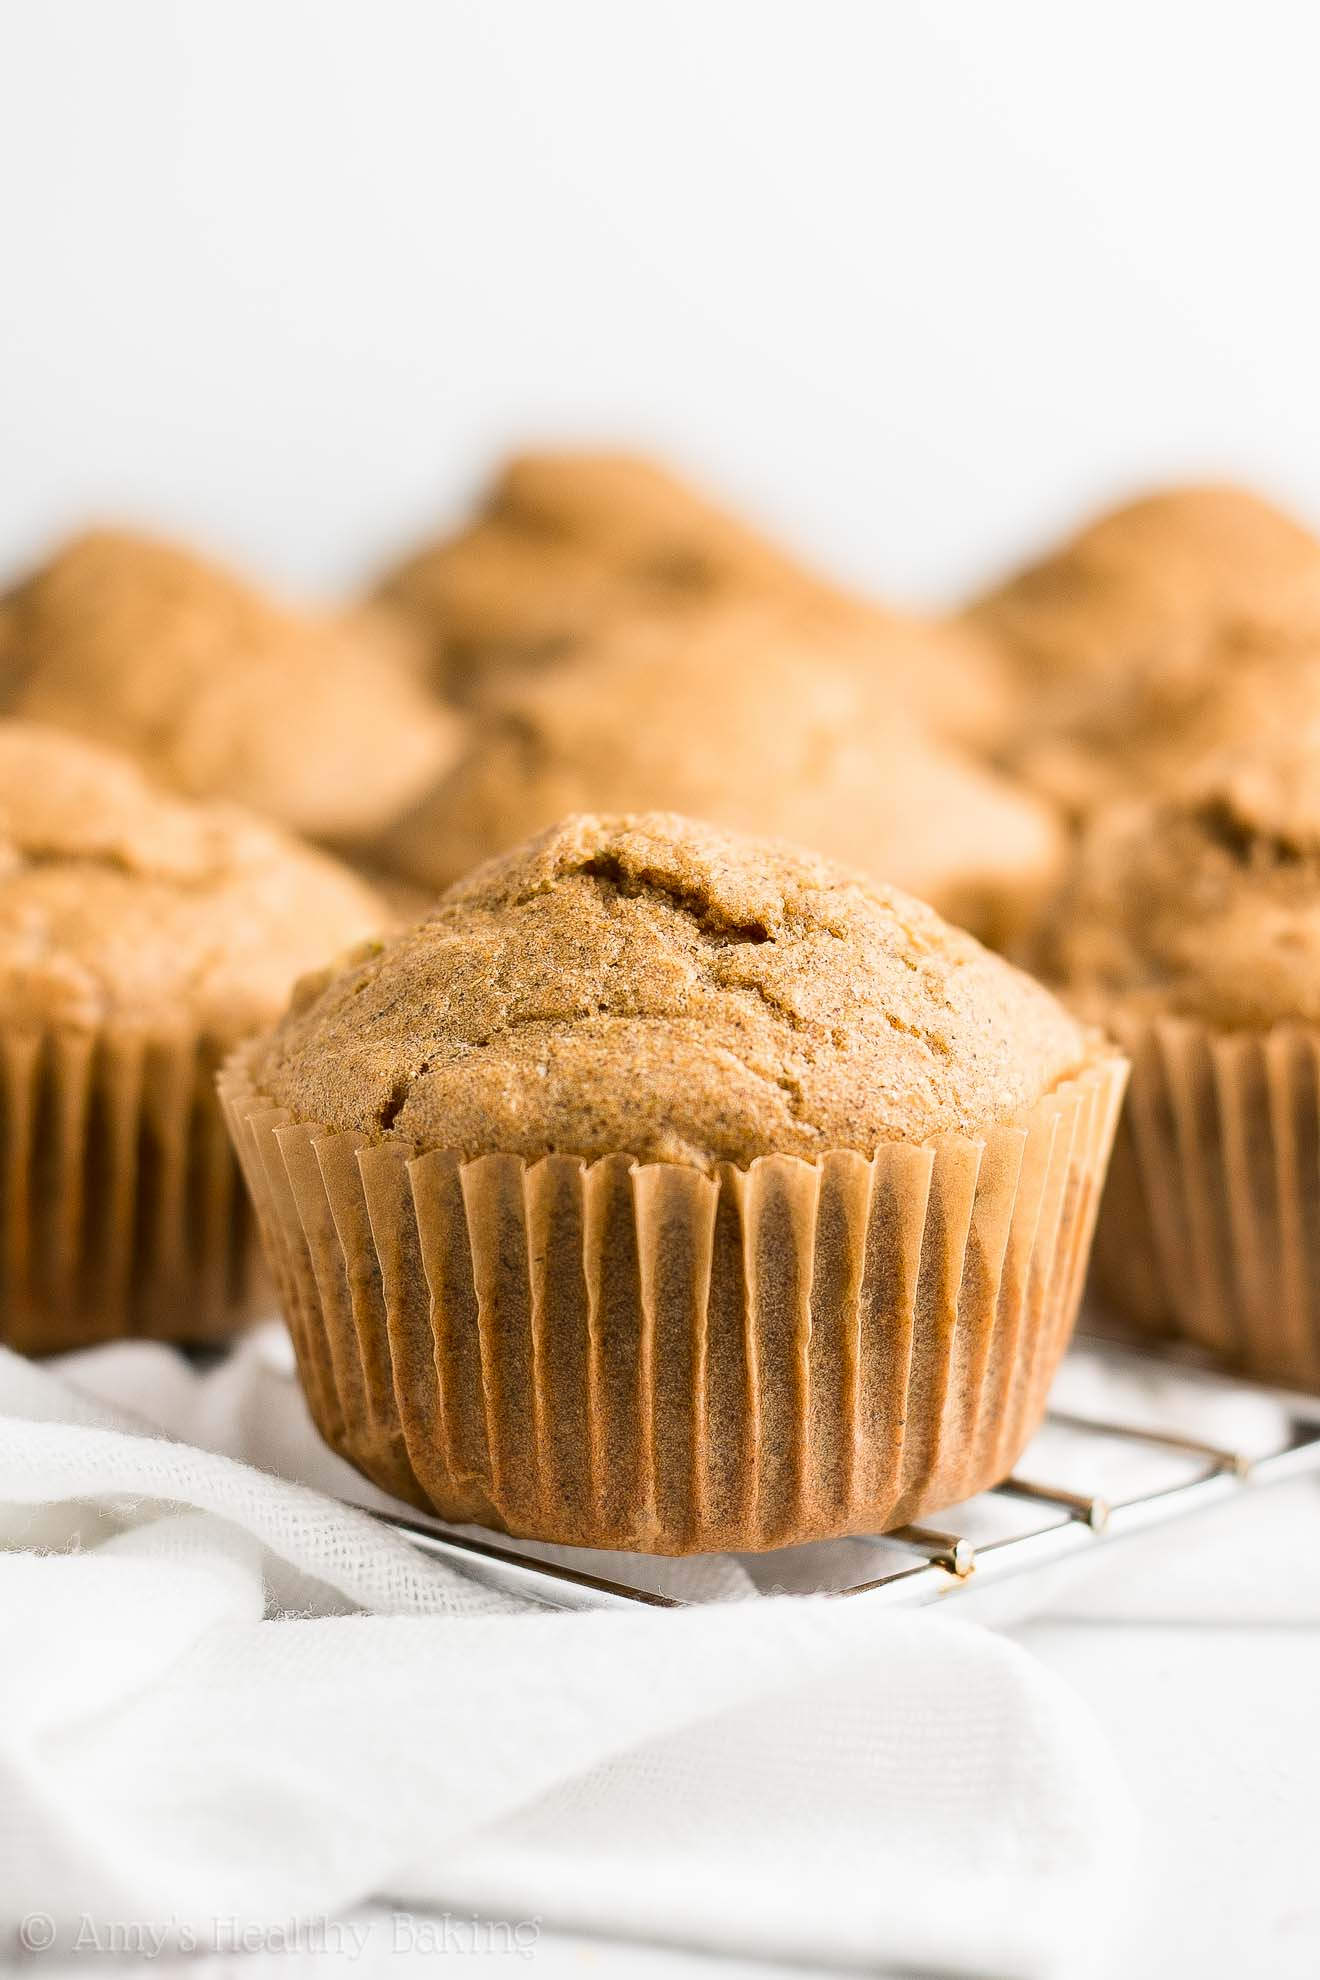 Freshly Baked Healthy Cinnamon Apple Cupcakes without frosting